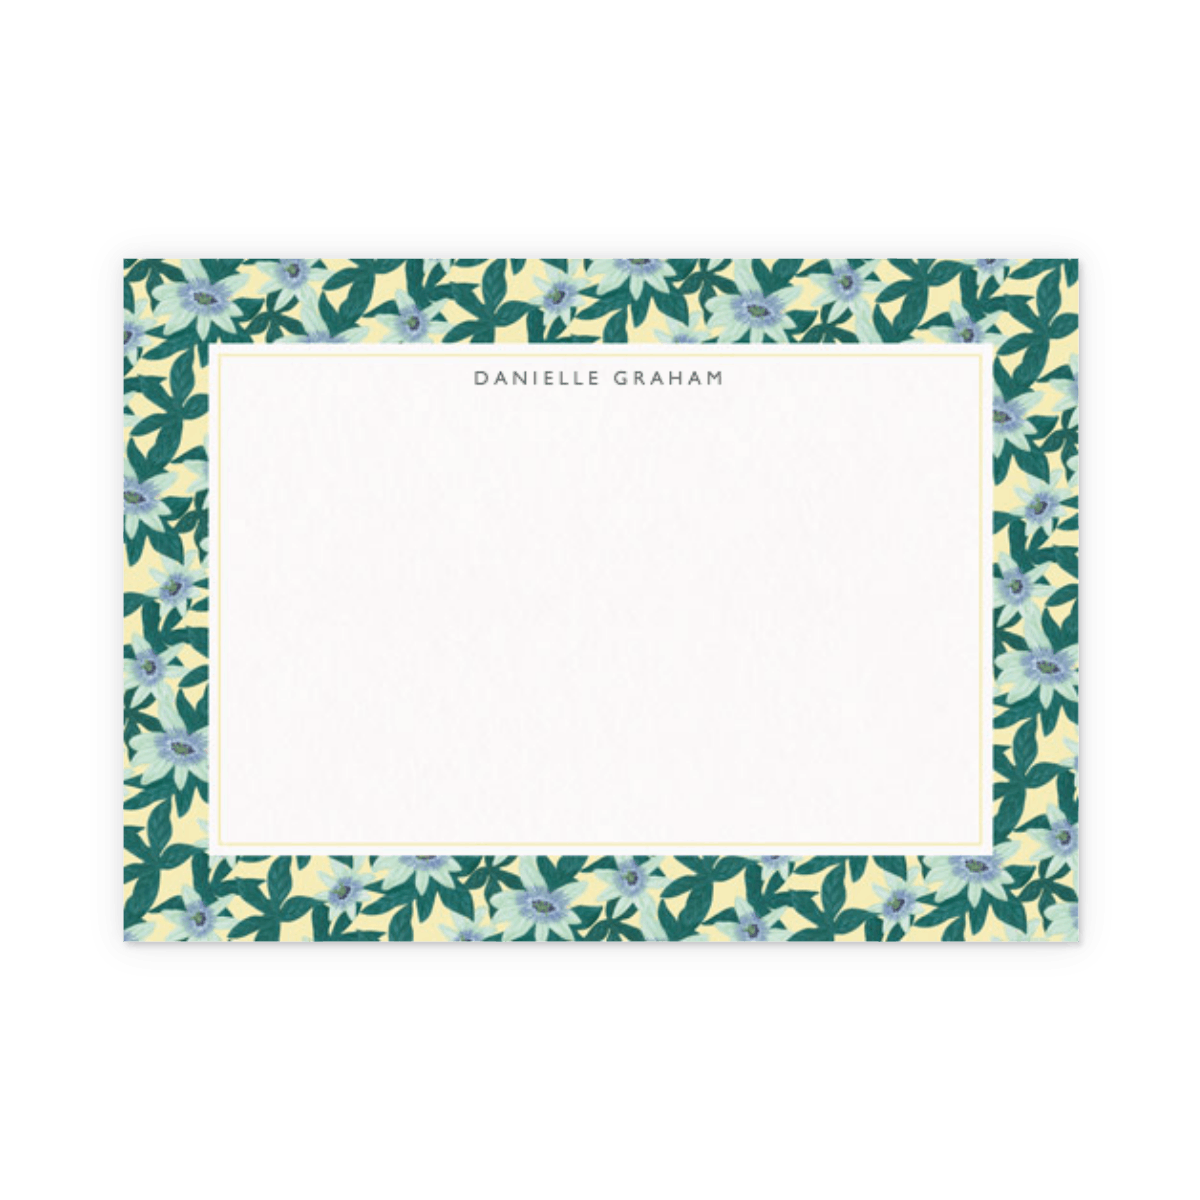 Https%3a%2f%2fwww.papier.com%2fproduct image%2f20613%2f10%2fpassion flower yellow 5270 front 1490091367.png?ixlib=rb 1.1